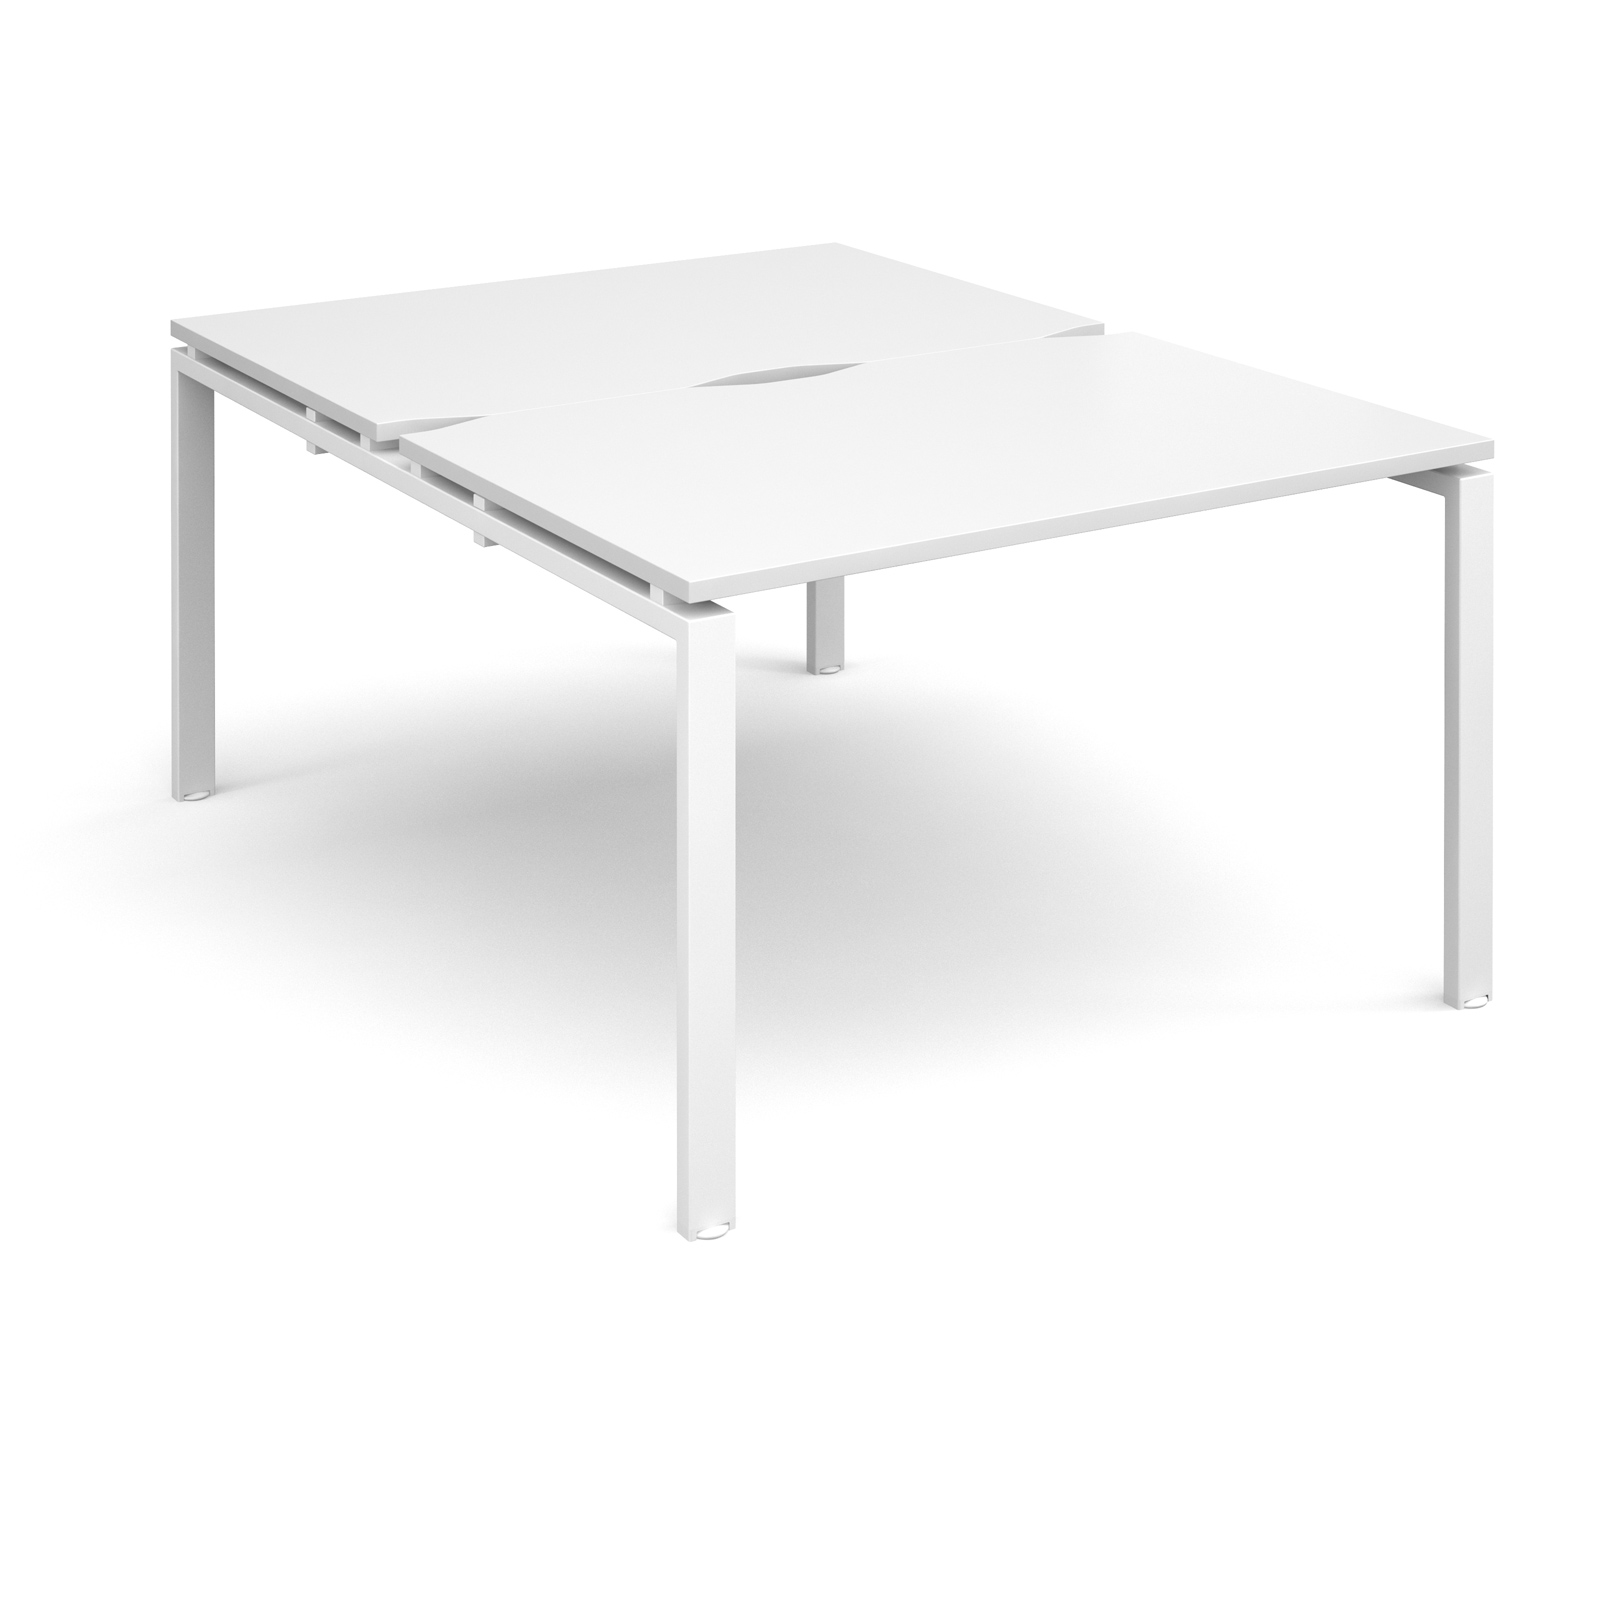 Adapt II 1200 x 1600 x 725mm Back to Back Desk - White / White Leg